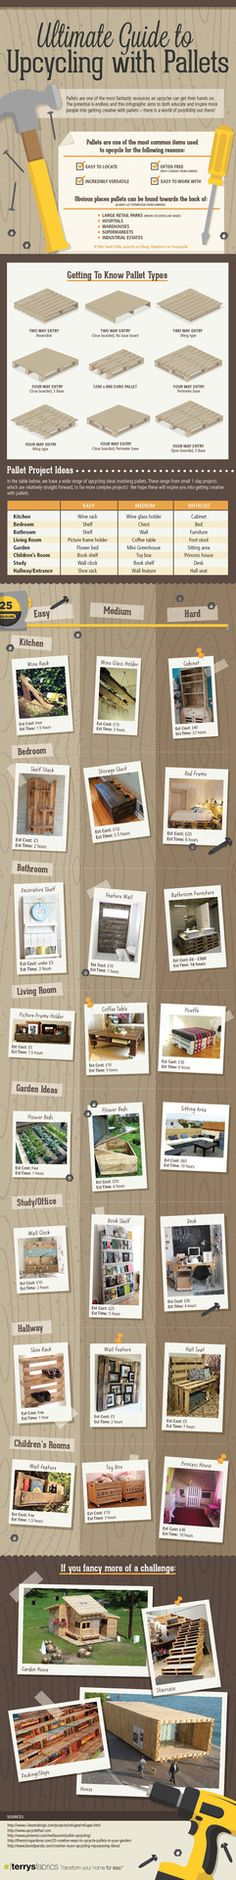 (via Upcycling With Pallets Infographic | Ultimate Pallet Upcycling Guide)